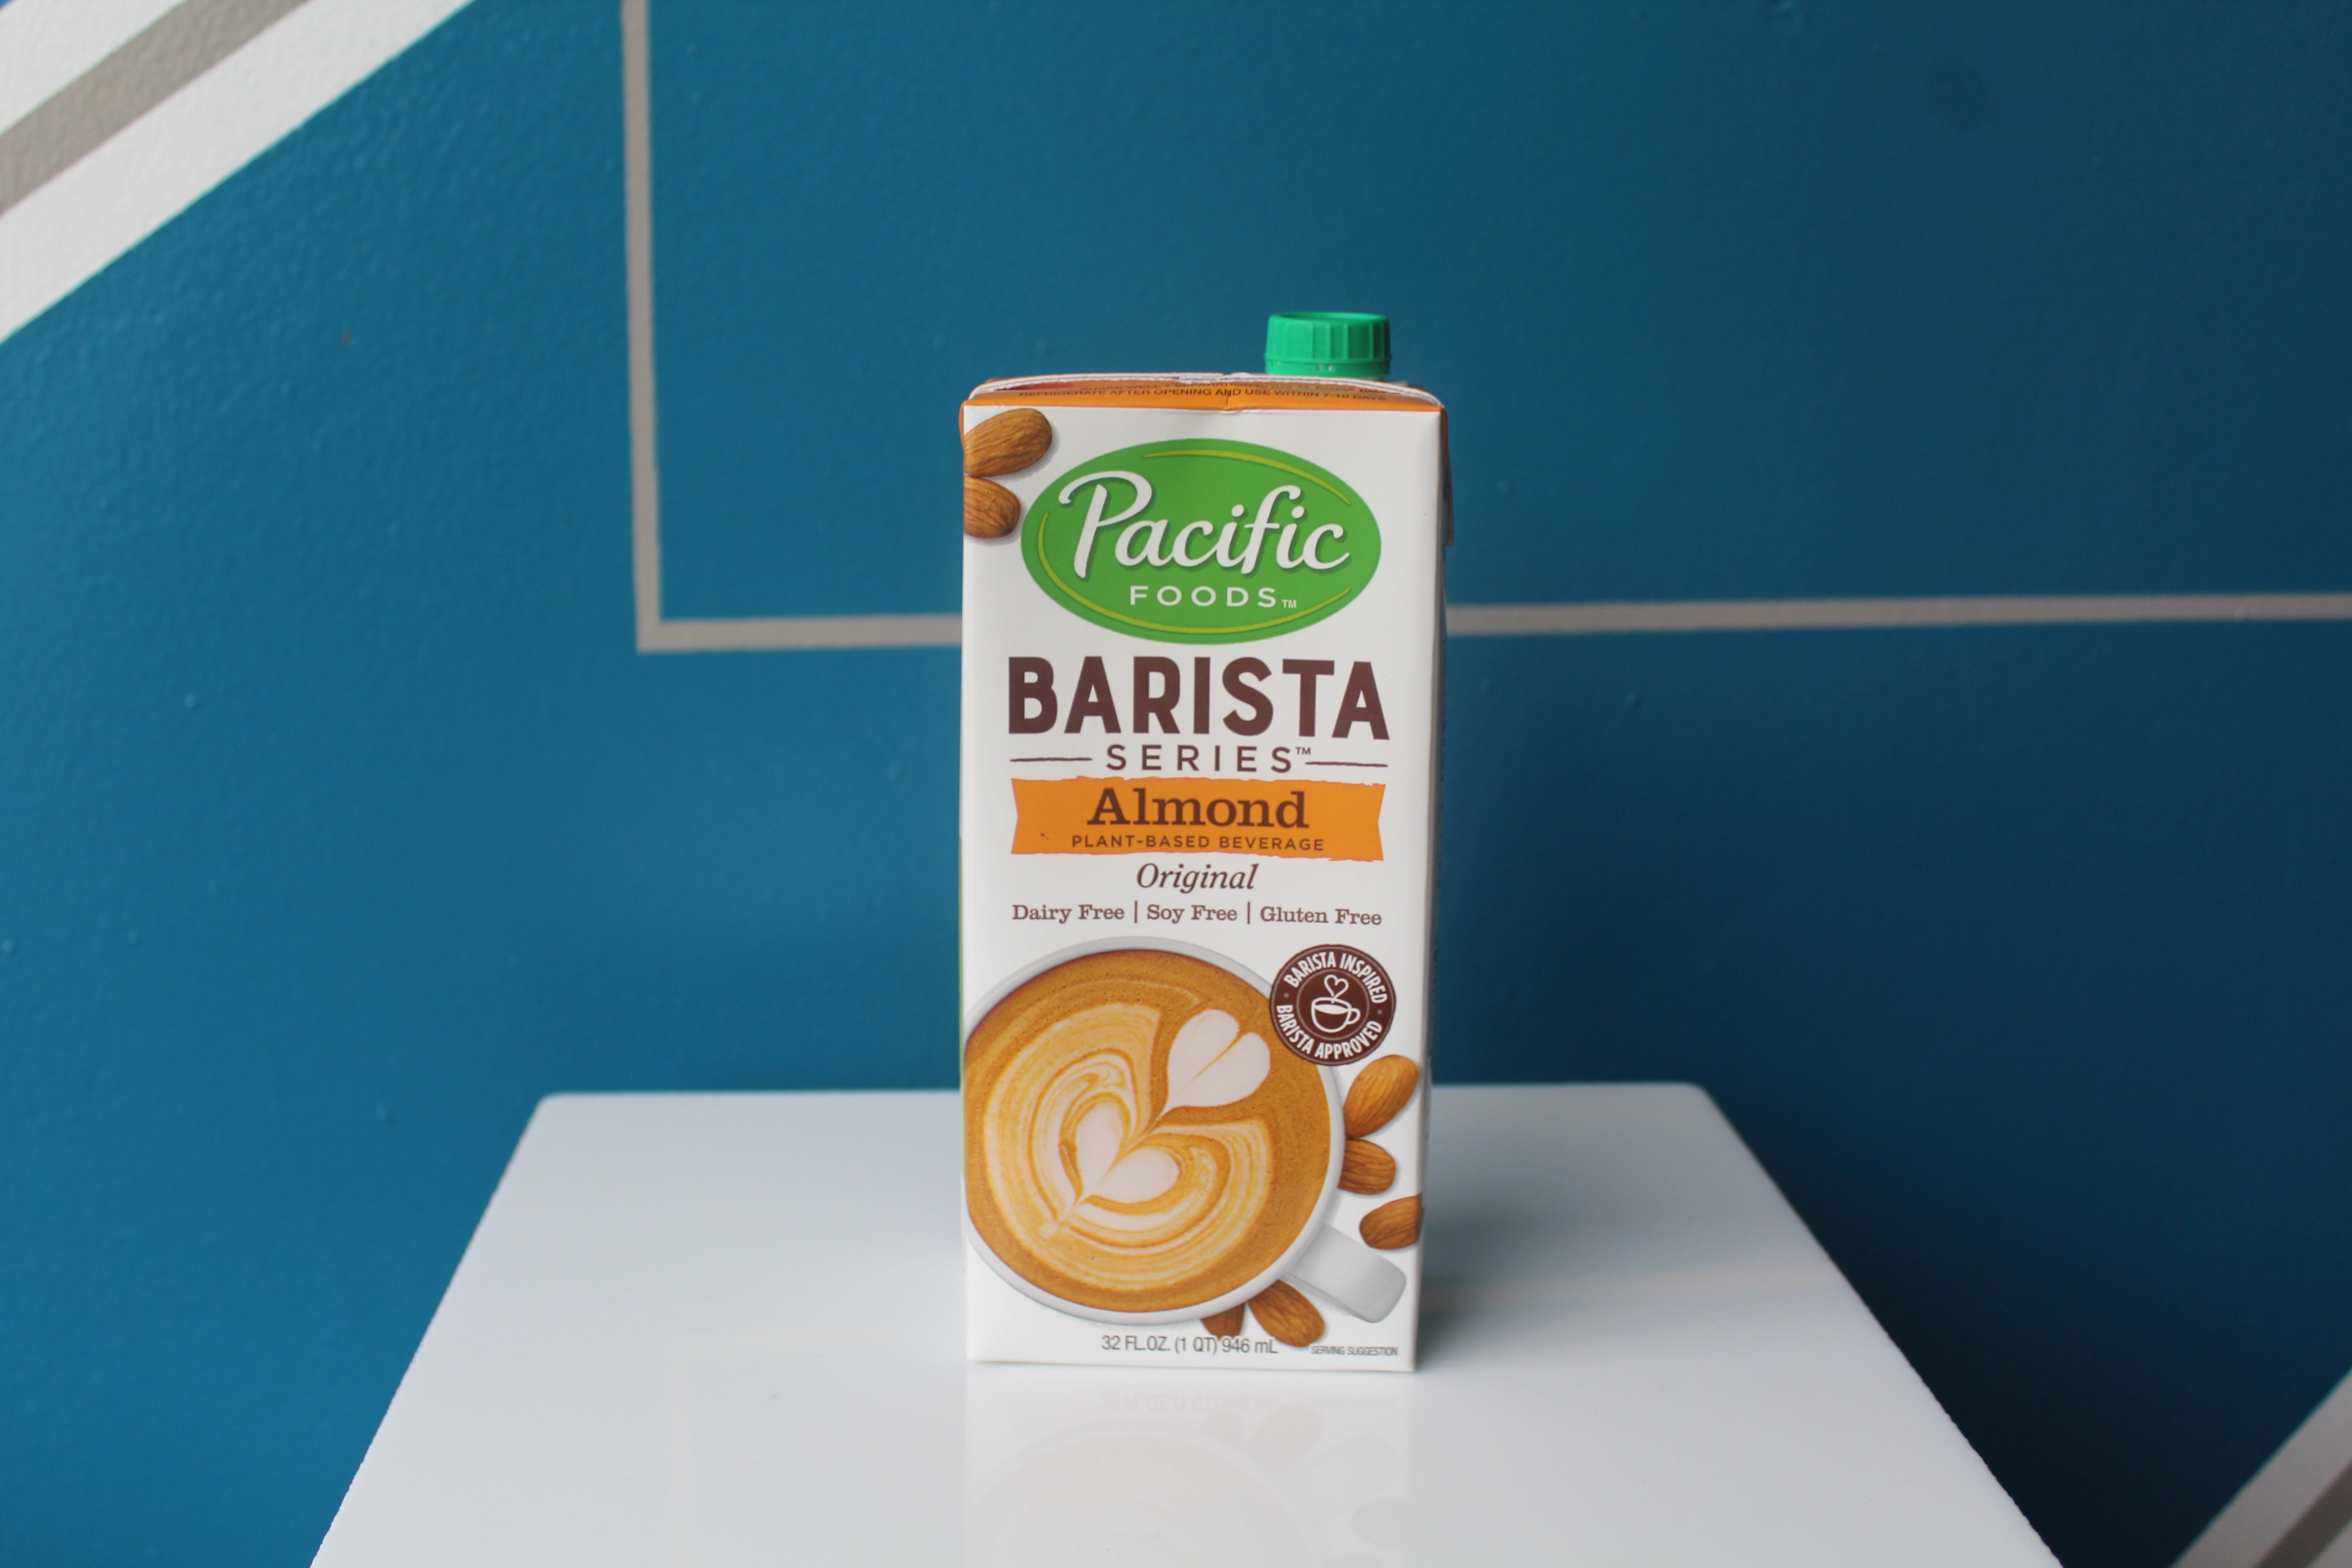 Pacific Foods Barista Series Almond Milk - 32 oz.